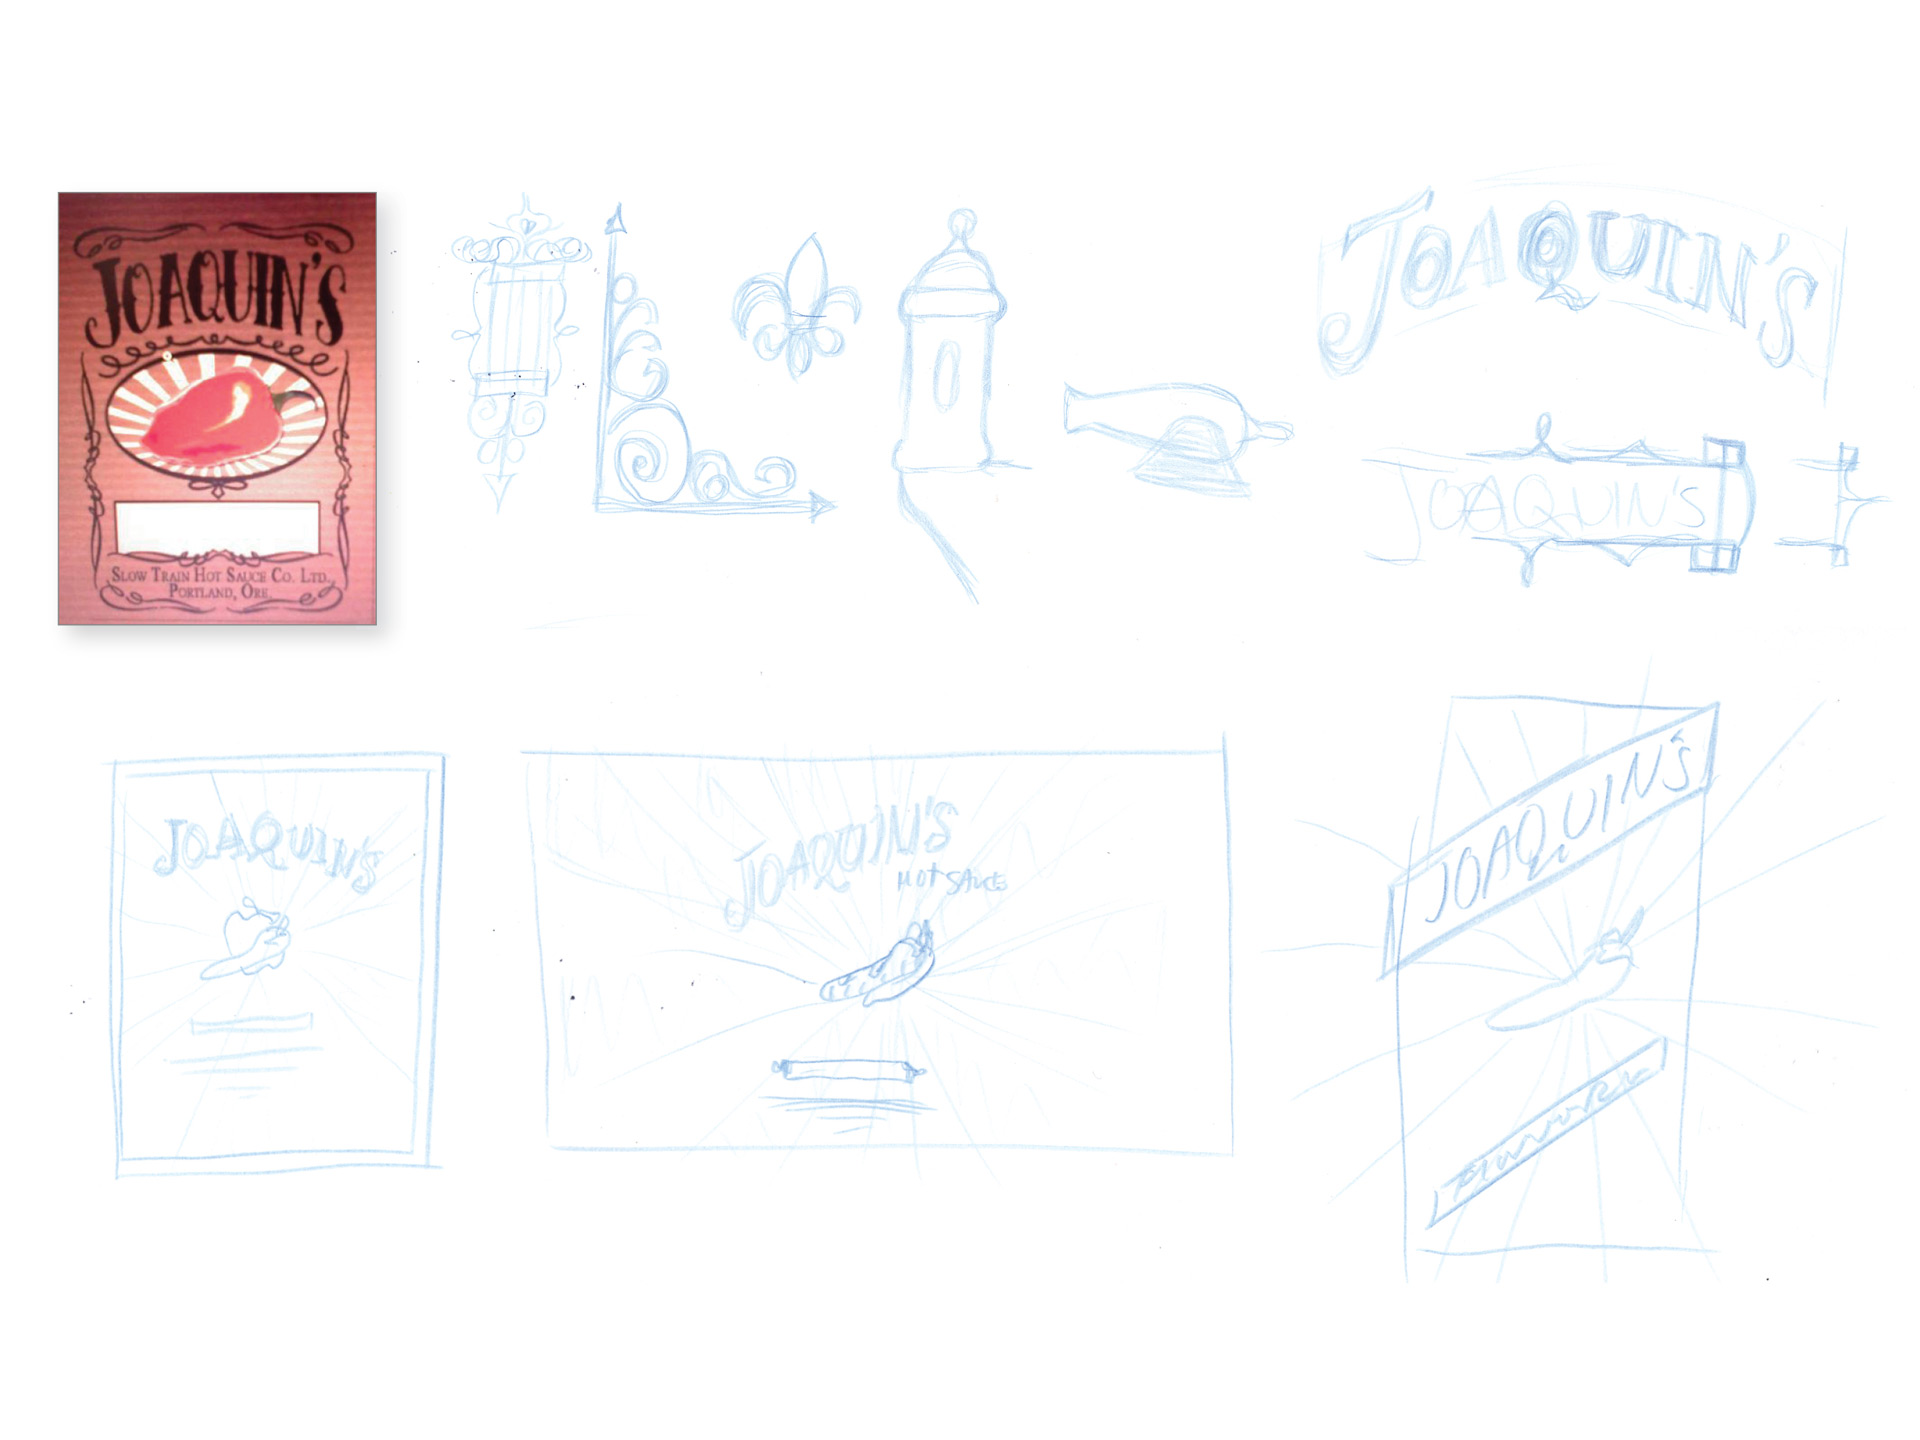 Joaquin's packaging development sketches